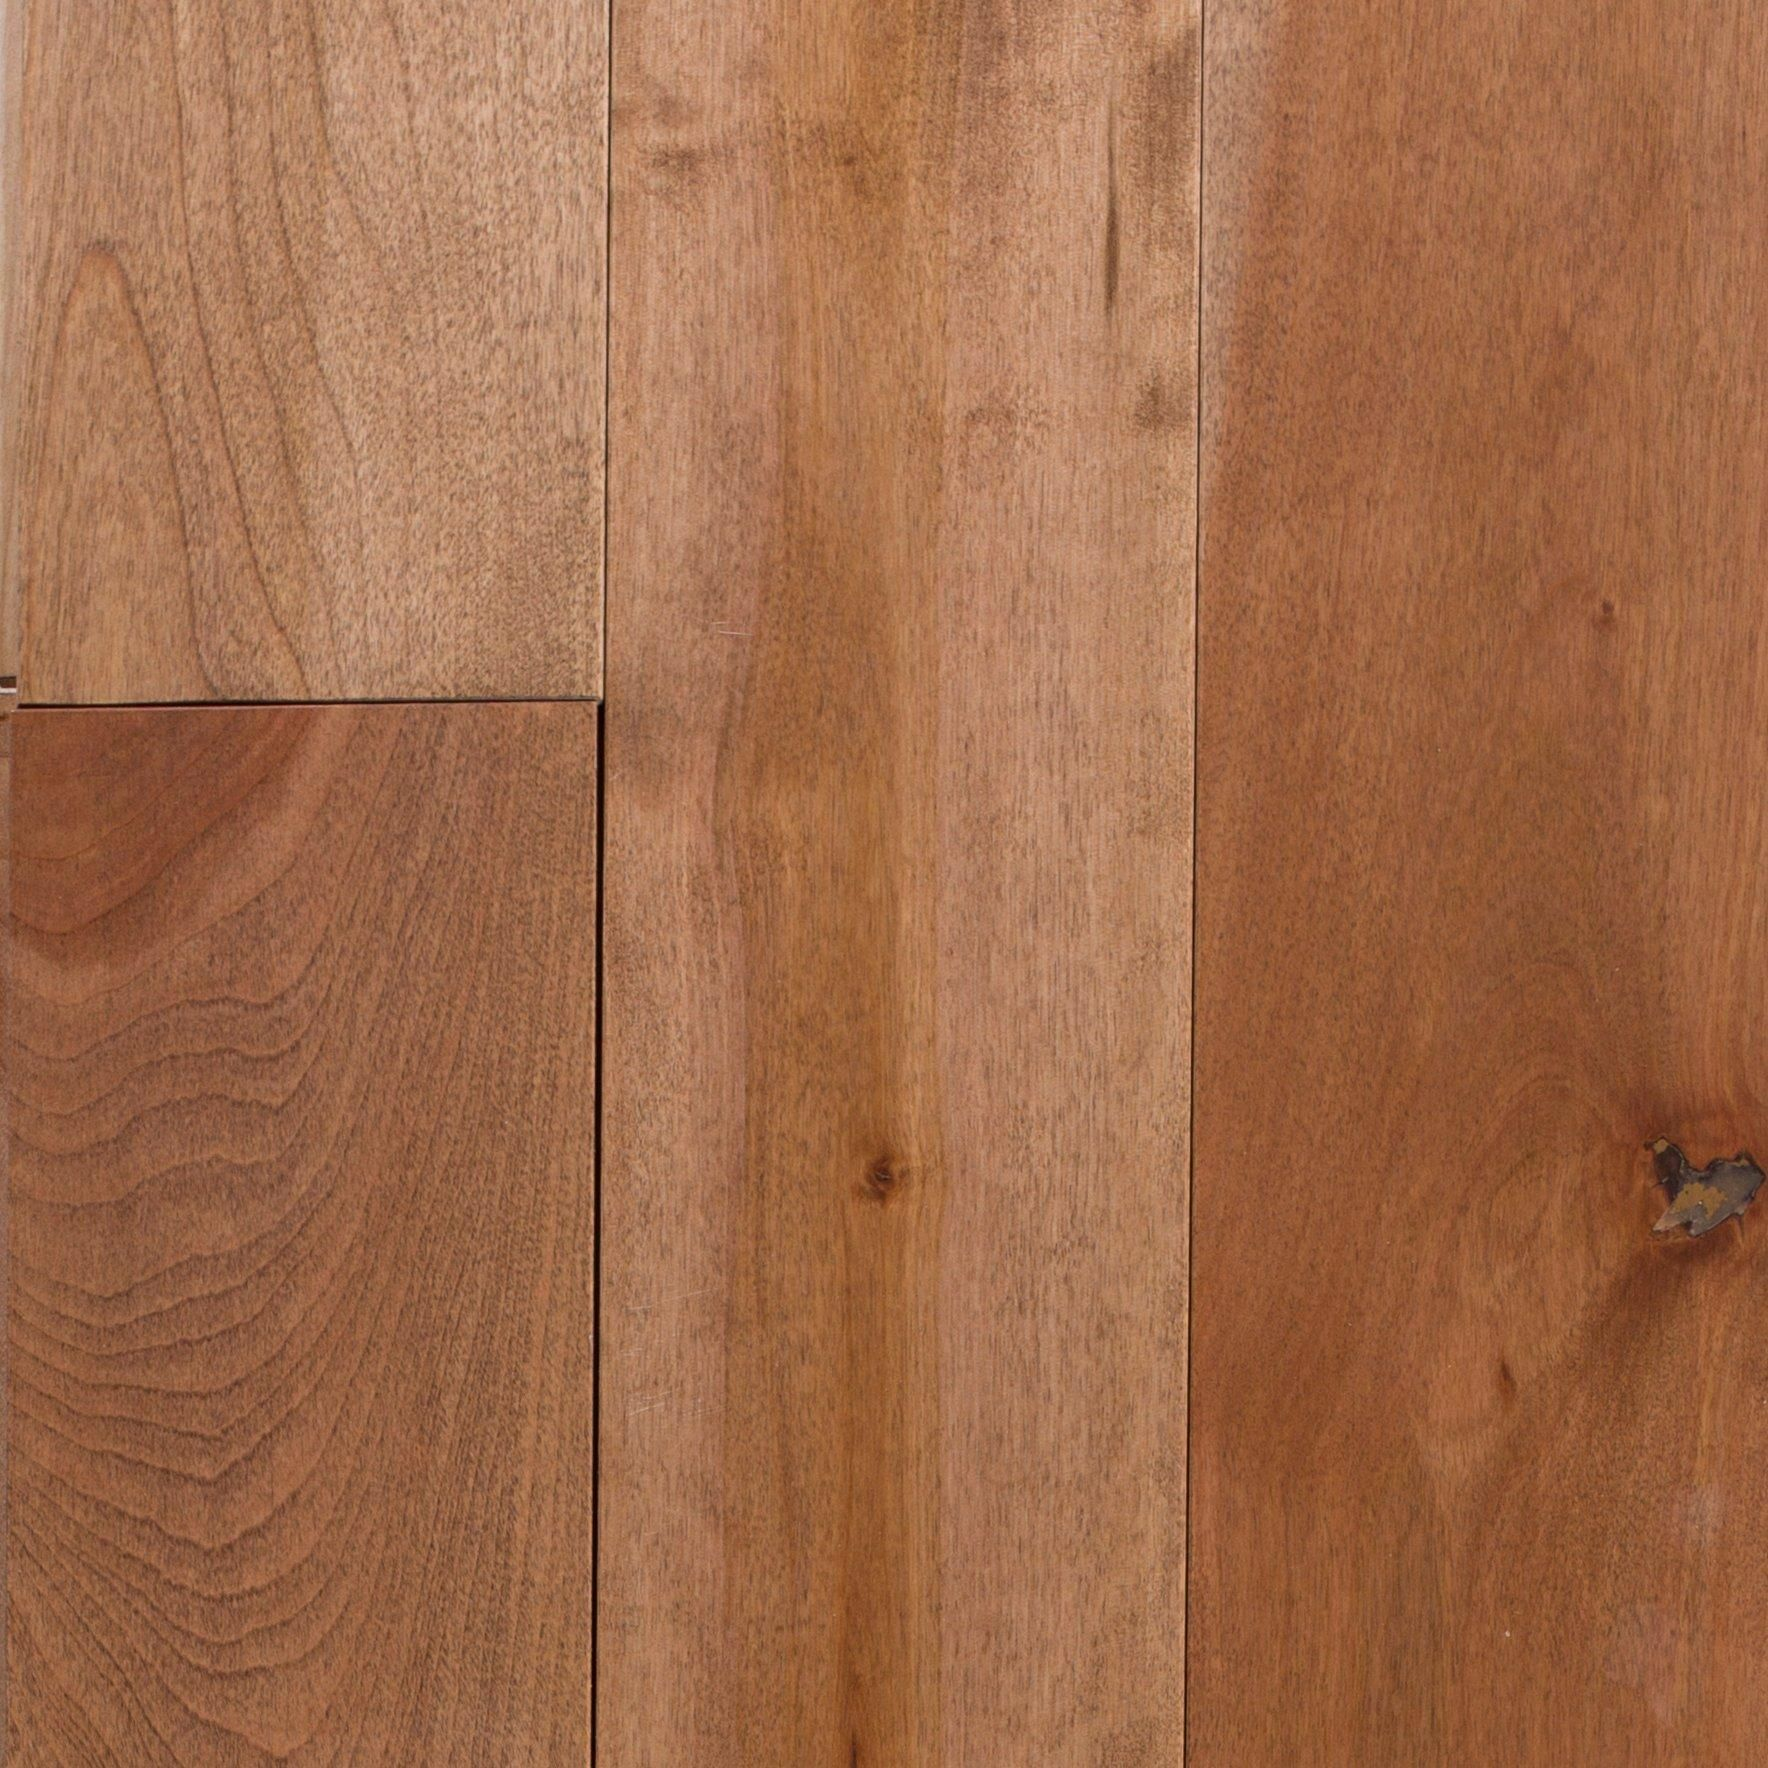 Pentos Birch Hand Scraped Solid Hardwood in 2018